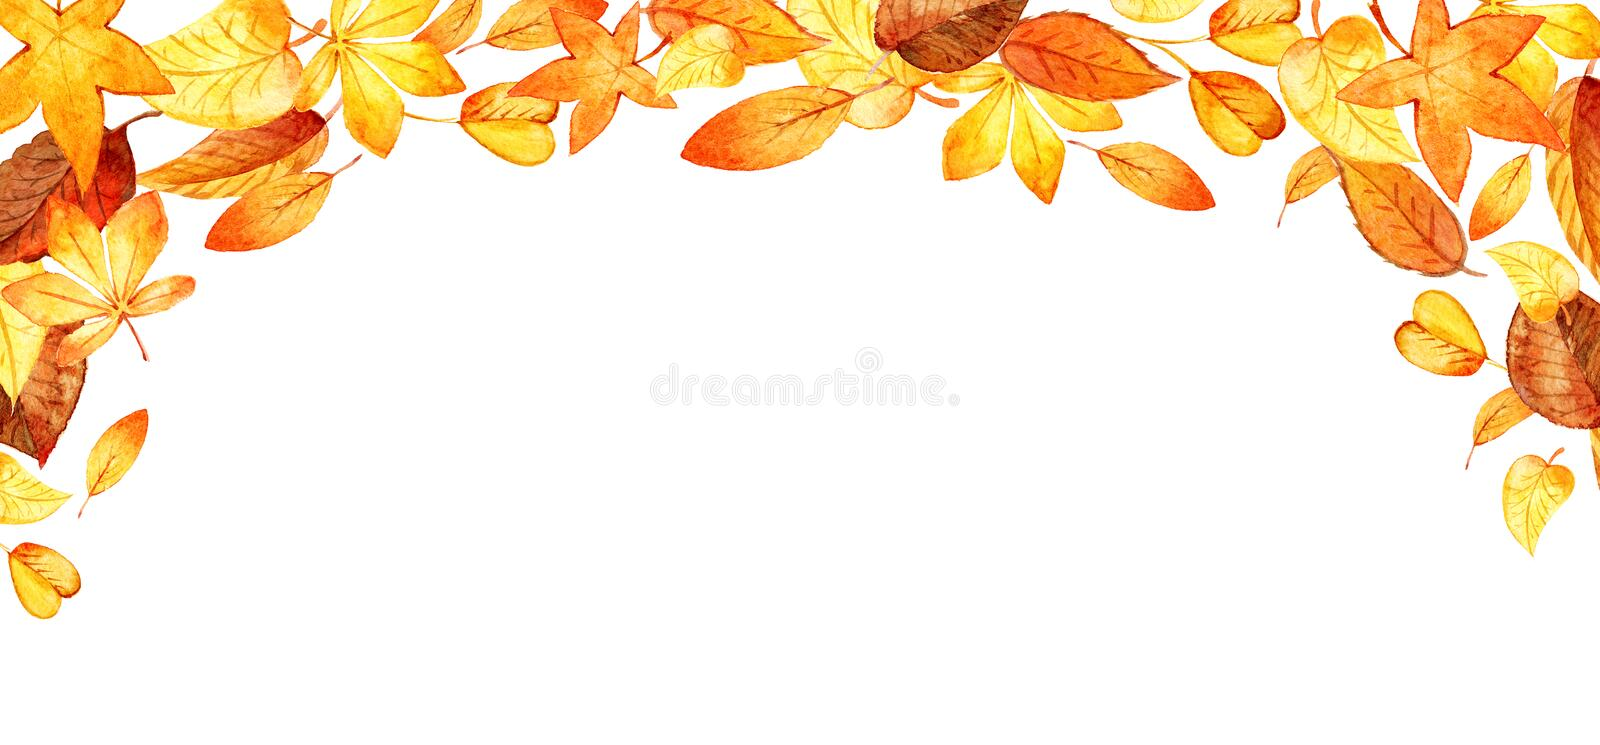 Watercolor illustration with colored leaves. Ideal for design with space for your text. Template for DIY projects vector illustration